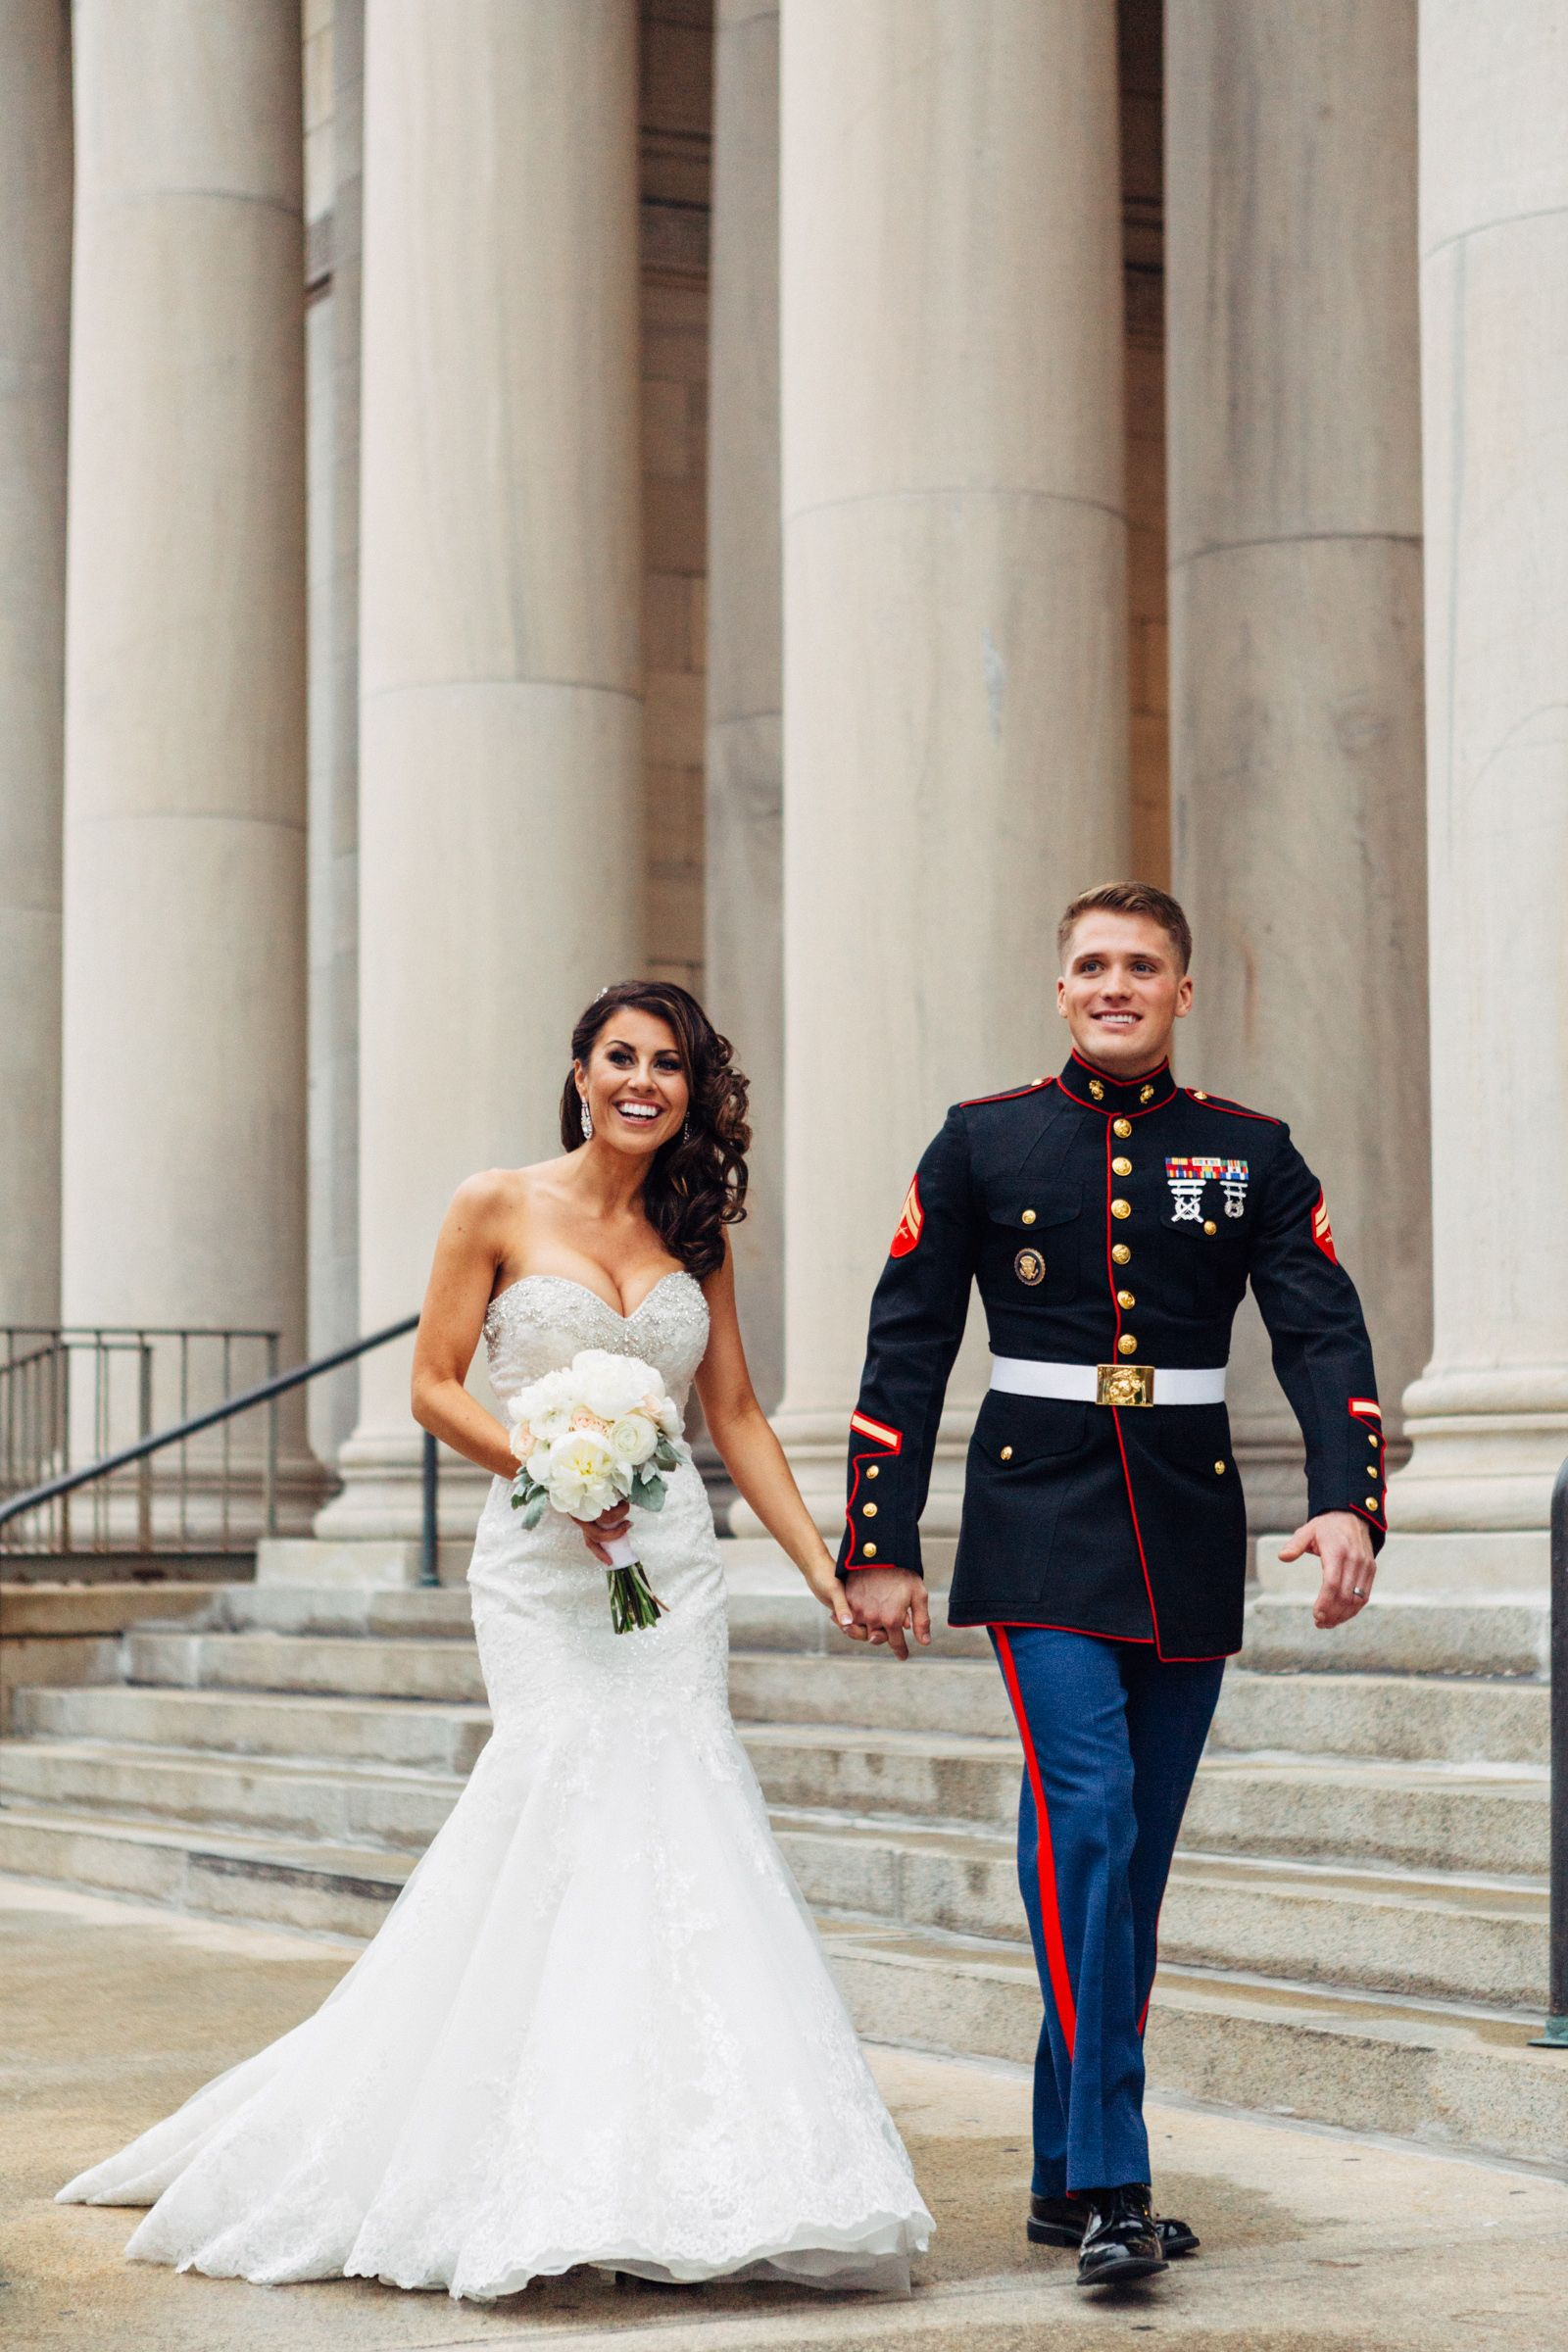 Marine Corp wedding Michael & Micah. militarywedding